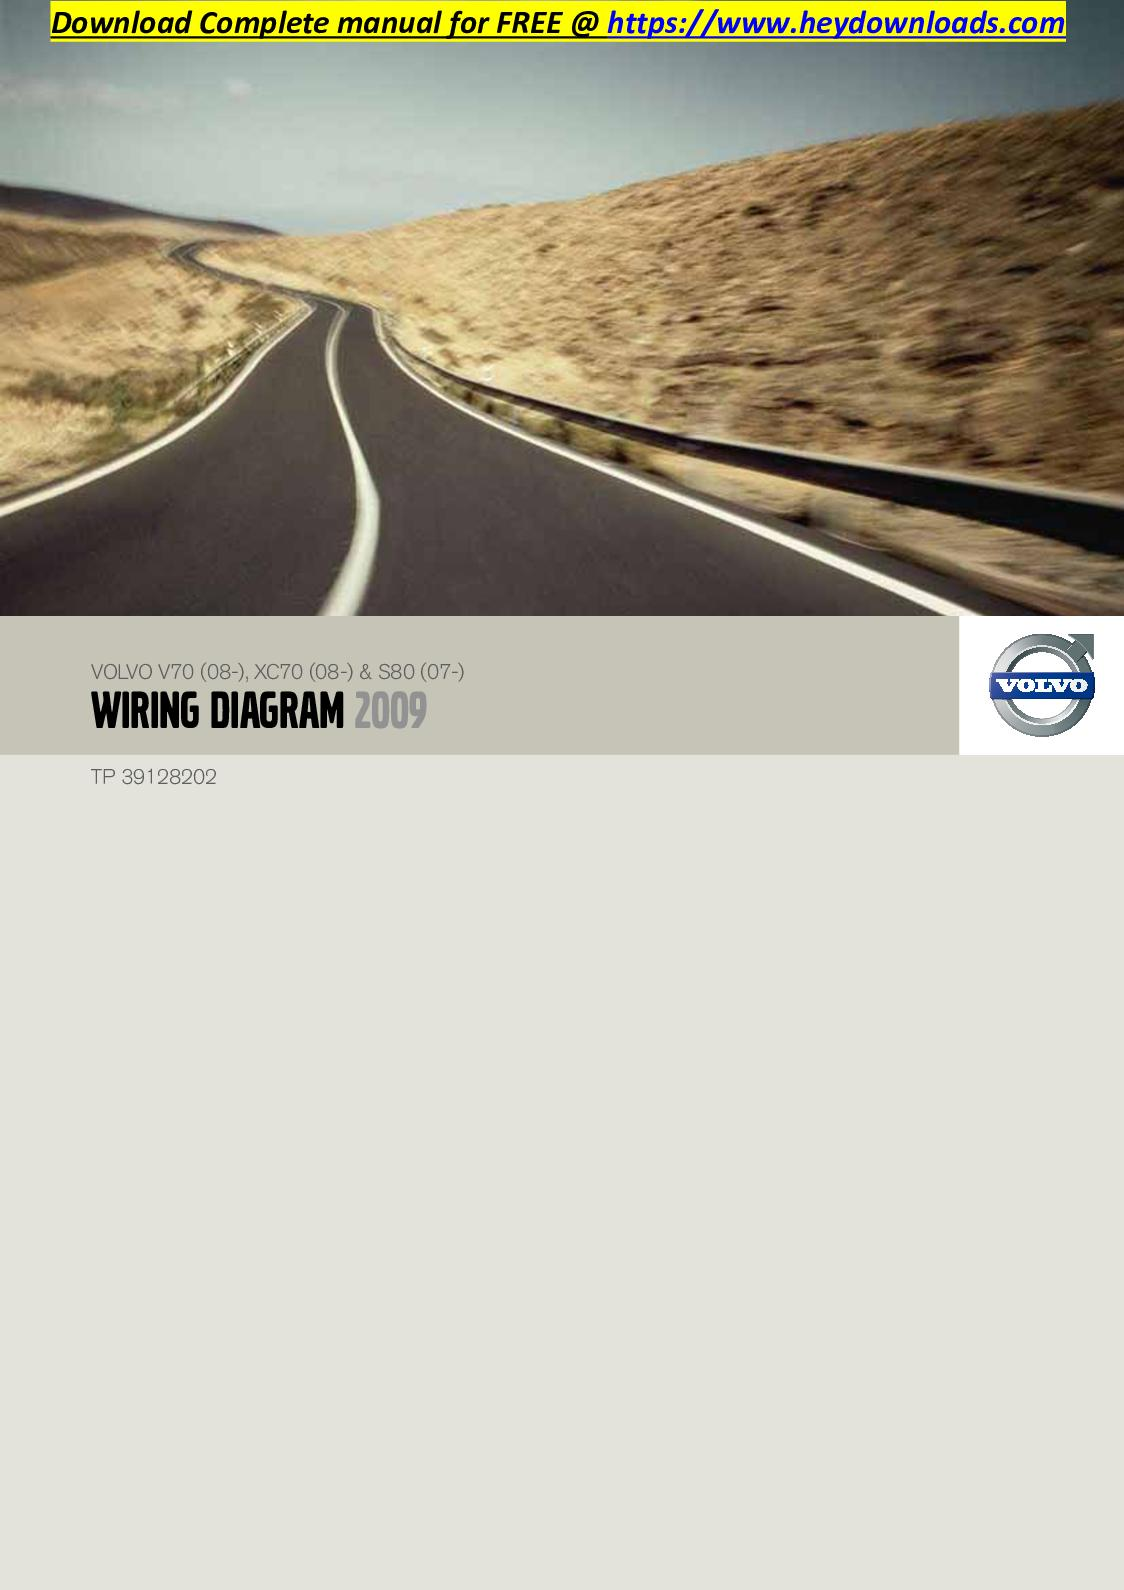 Wiring Diagram Together With 90 Volvo Wiper Motor Replacement Motor